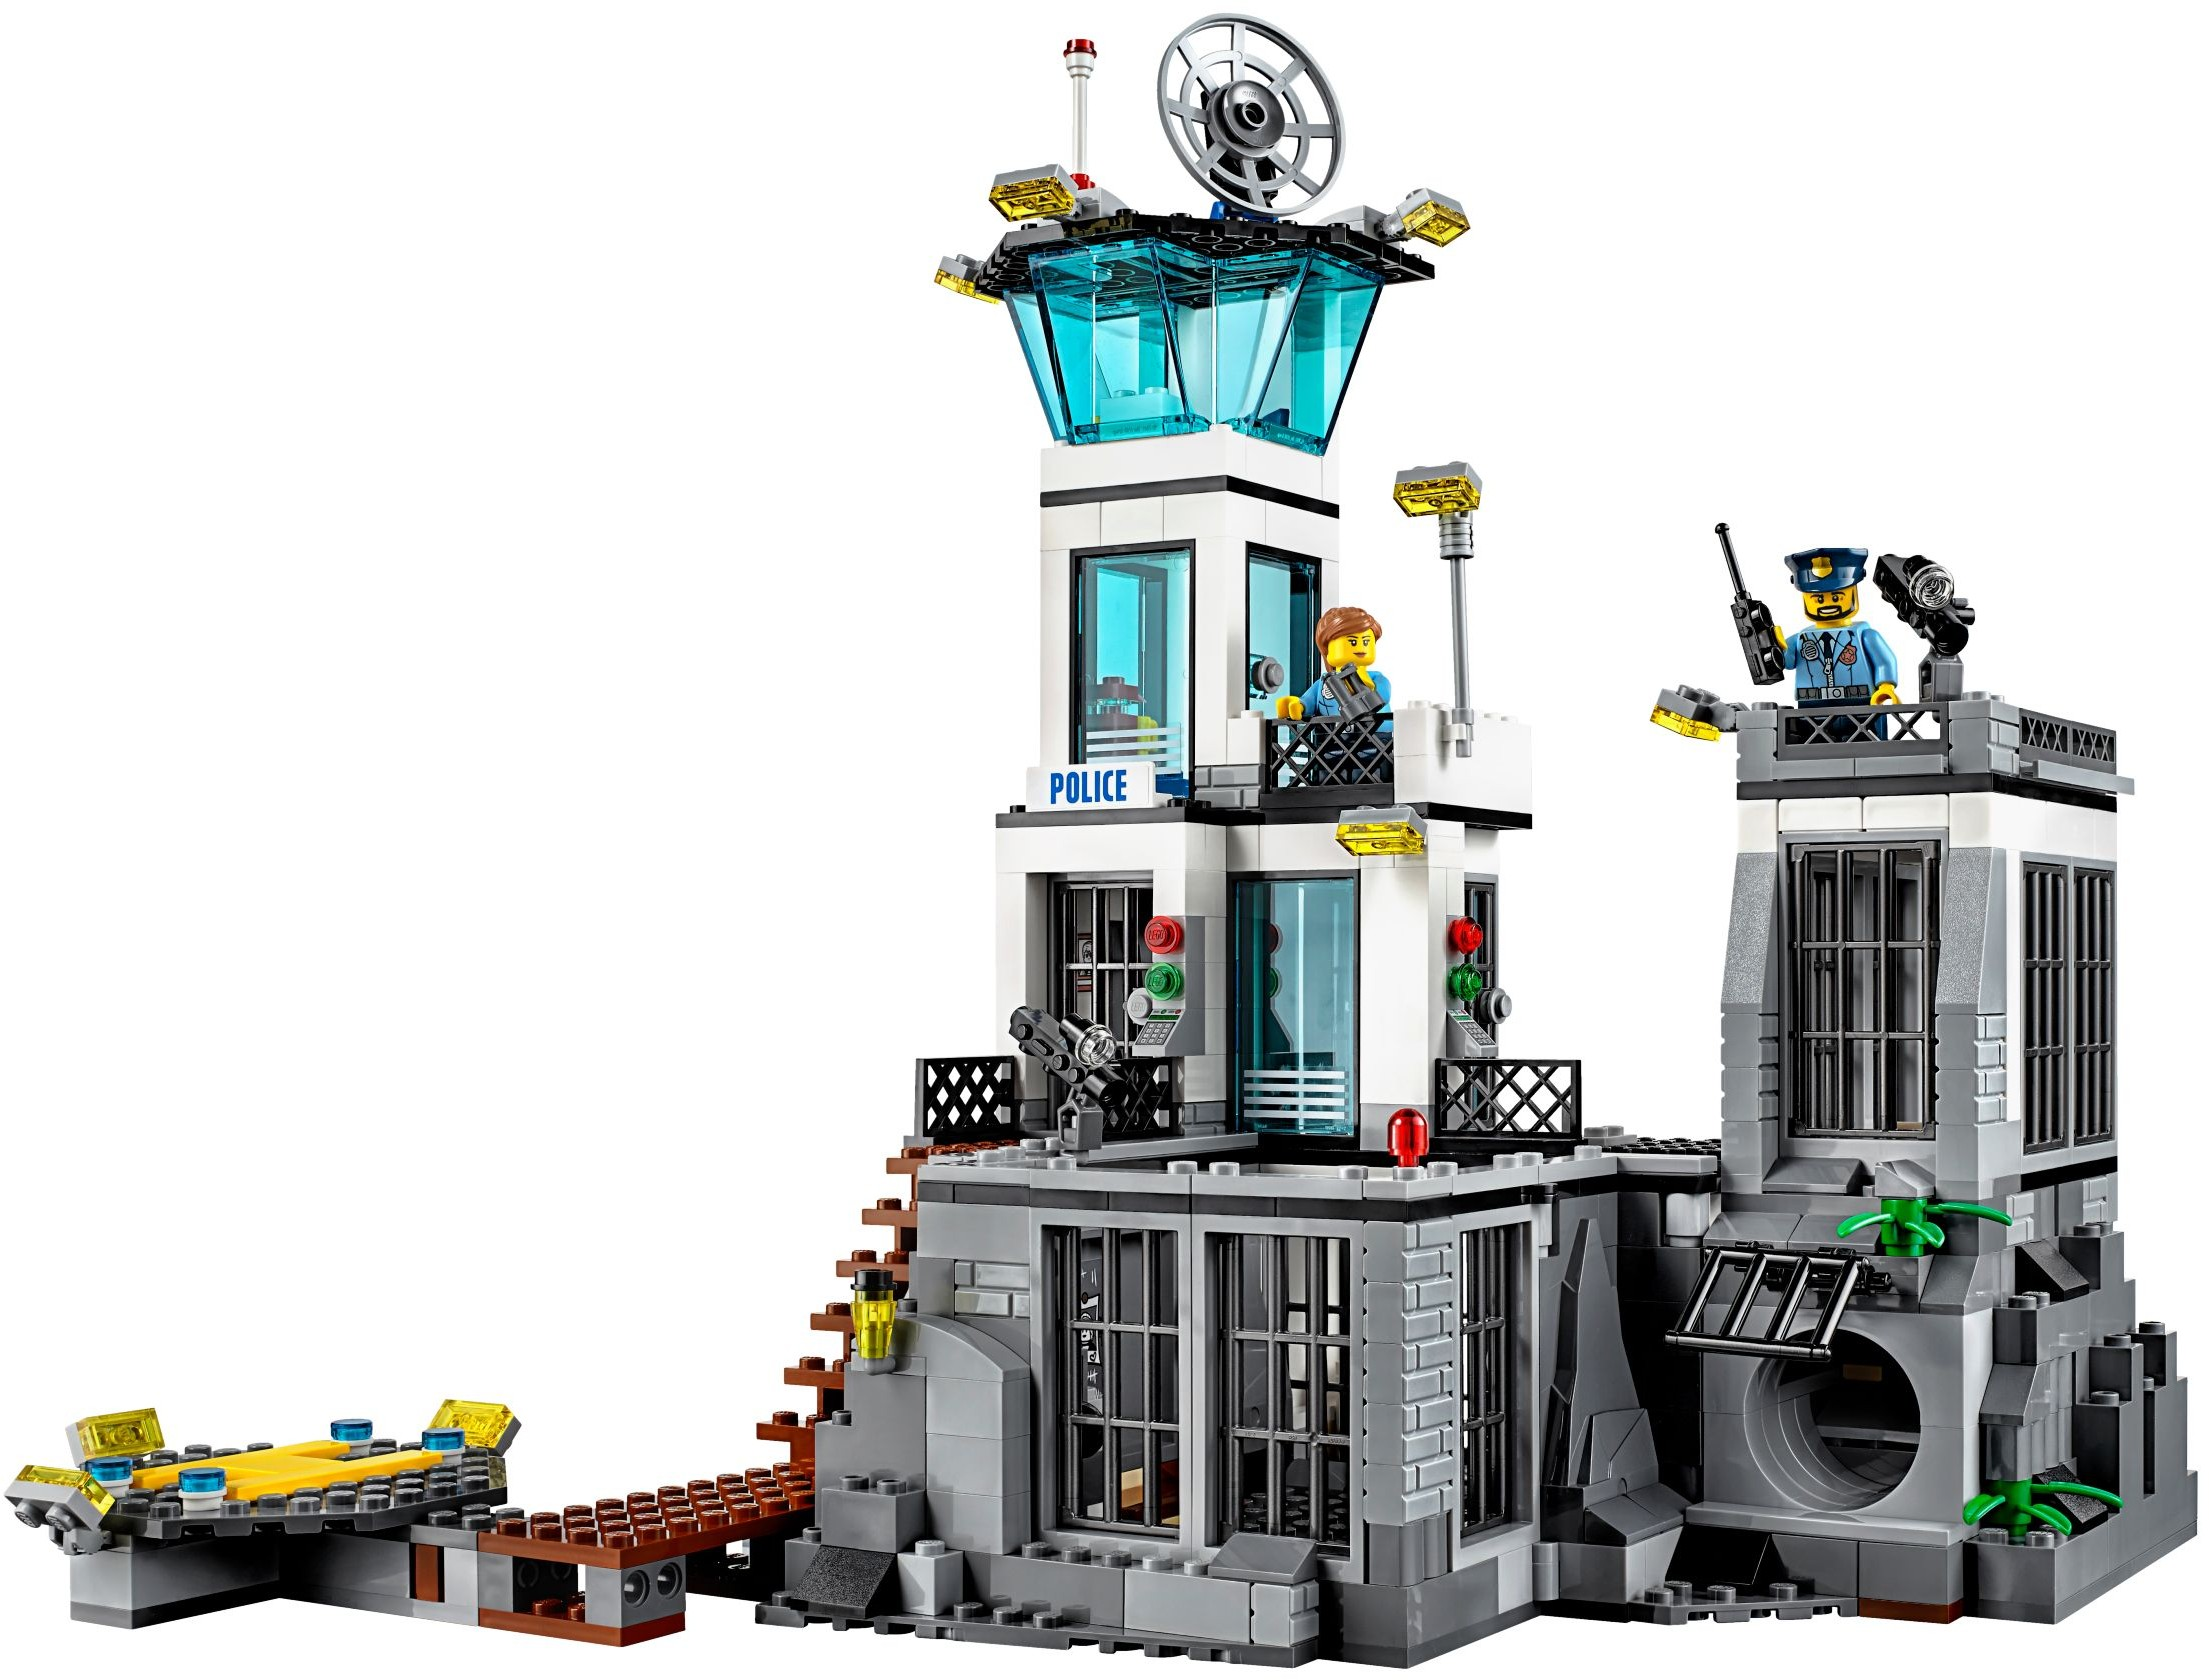 lego helicopter police with Lego City 2015 Prison Island 60130 Set Photos Preview on 23765 as well A 51244092 together with Lego City I Nuovi Set Del 2012 additionally B01ETG05Z0 besides Watch.